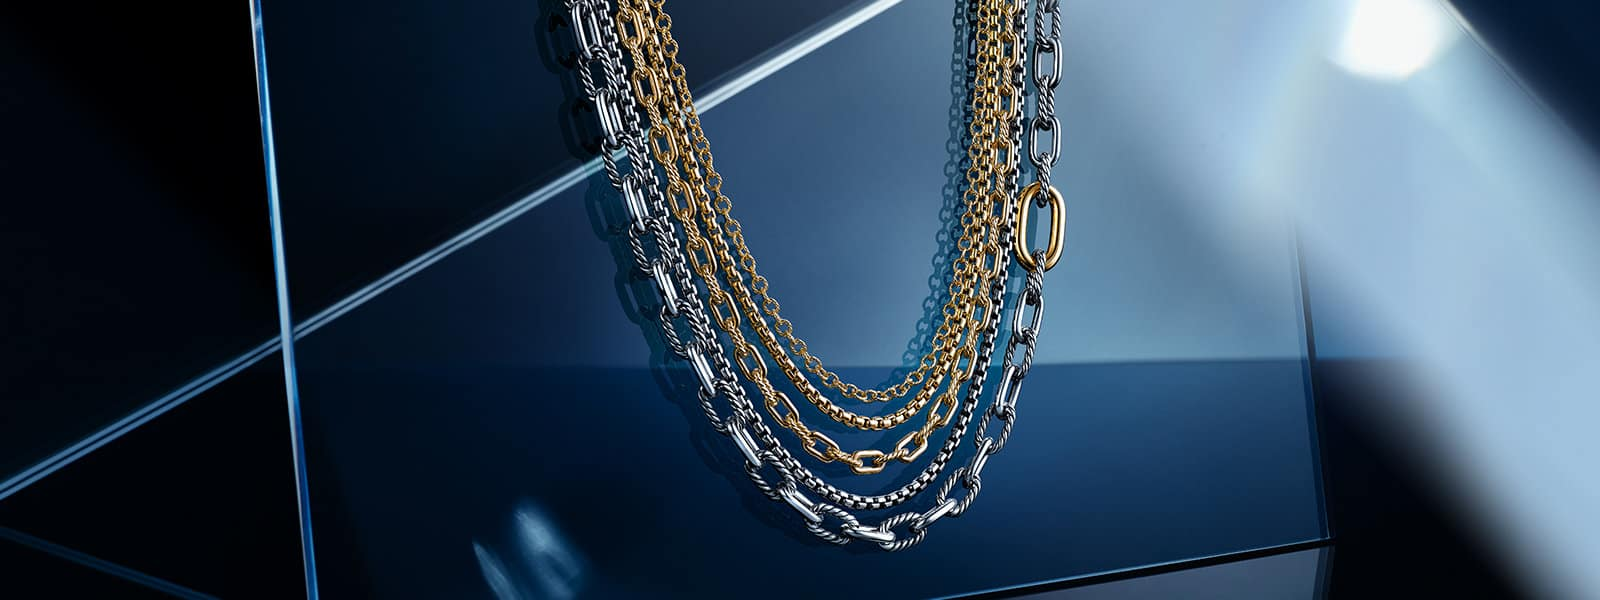 Five David Yurman box chain and oval-link necklaces are layered together against a blue-and-white surface. The jewelry is crafted from 18K yellow gold or sterling silver with or without 18K yellow gold accents. The background displays angular reflections of light and resembles a mirror.